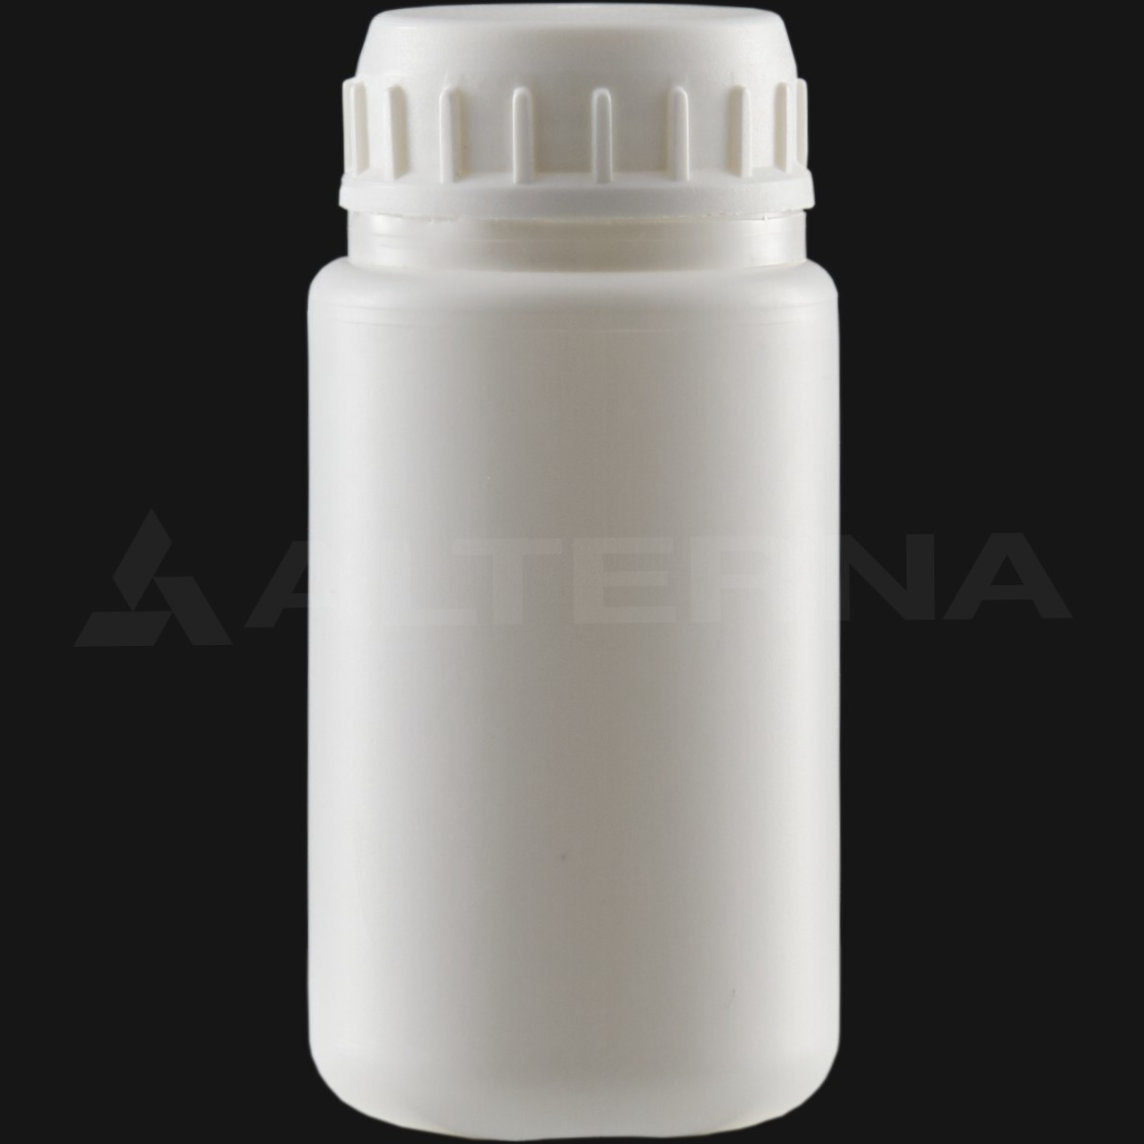 100 ml HDPE Bottle with 38 mm Foam Seal Secure Cap